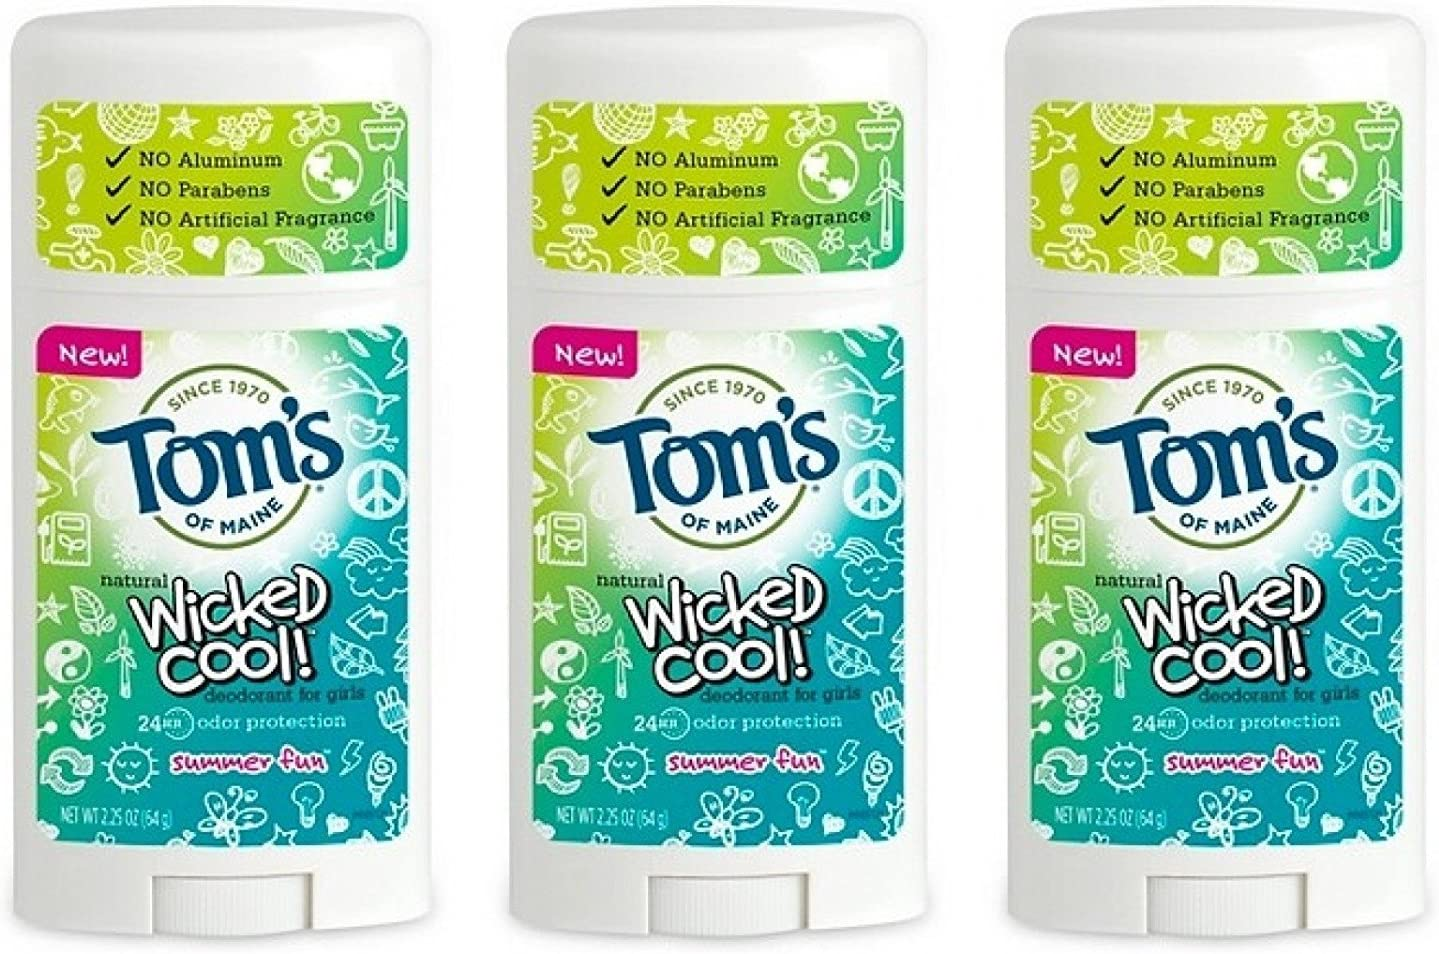 Amazon Com Toms Of Maine Natural Wicked Cool Deodorant For Girls Summer Fun 2 25 Oz Pa Health Personal Care